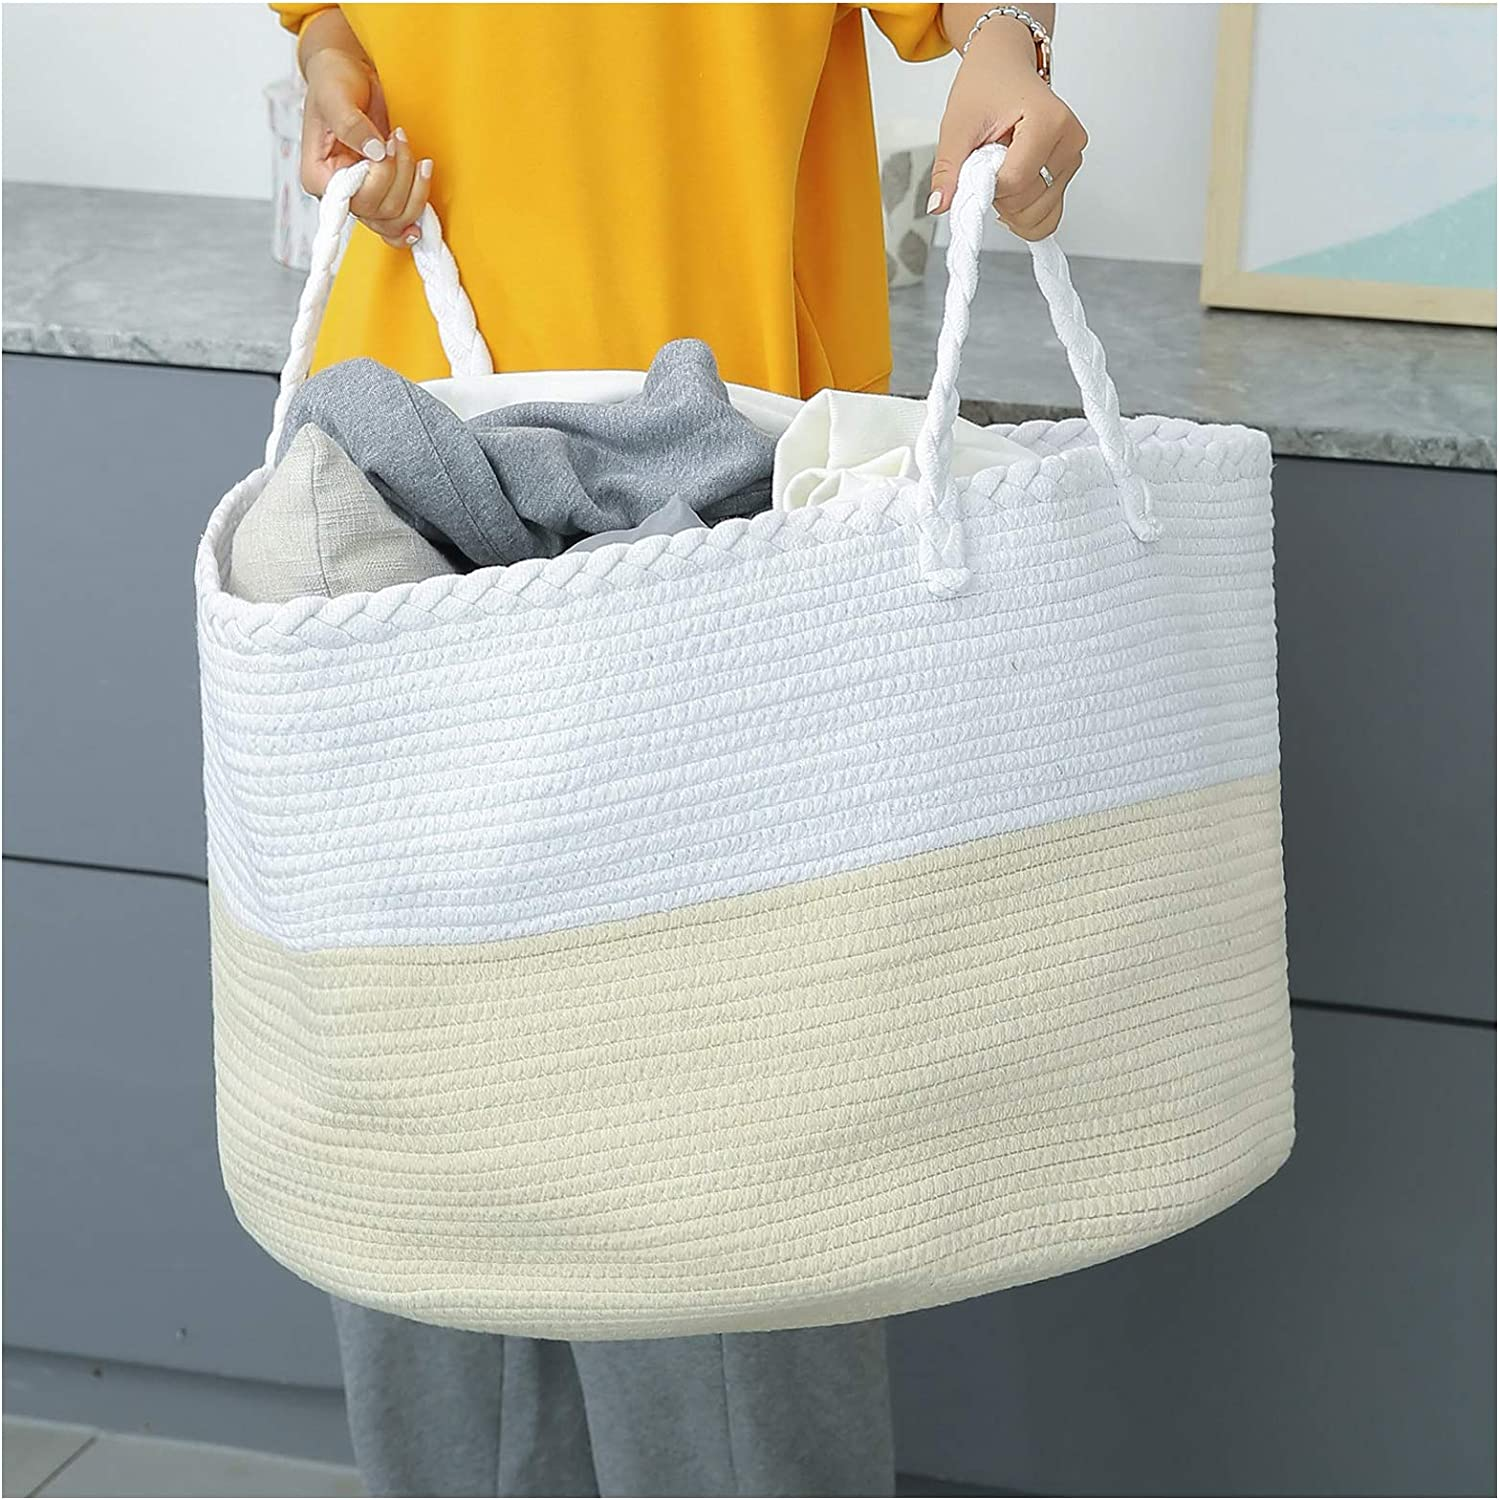 catalpa yao Cotton Rope Basket 22x14 Inch XXXL Large Woven Storage with Handles for Blankets, Toys and Nursery Laundry Hamper (White & Beige)